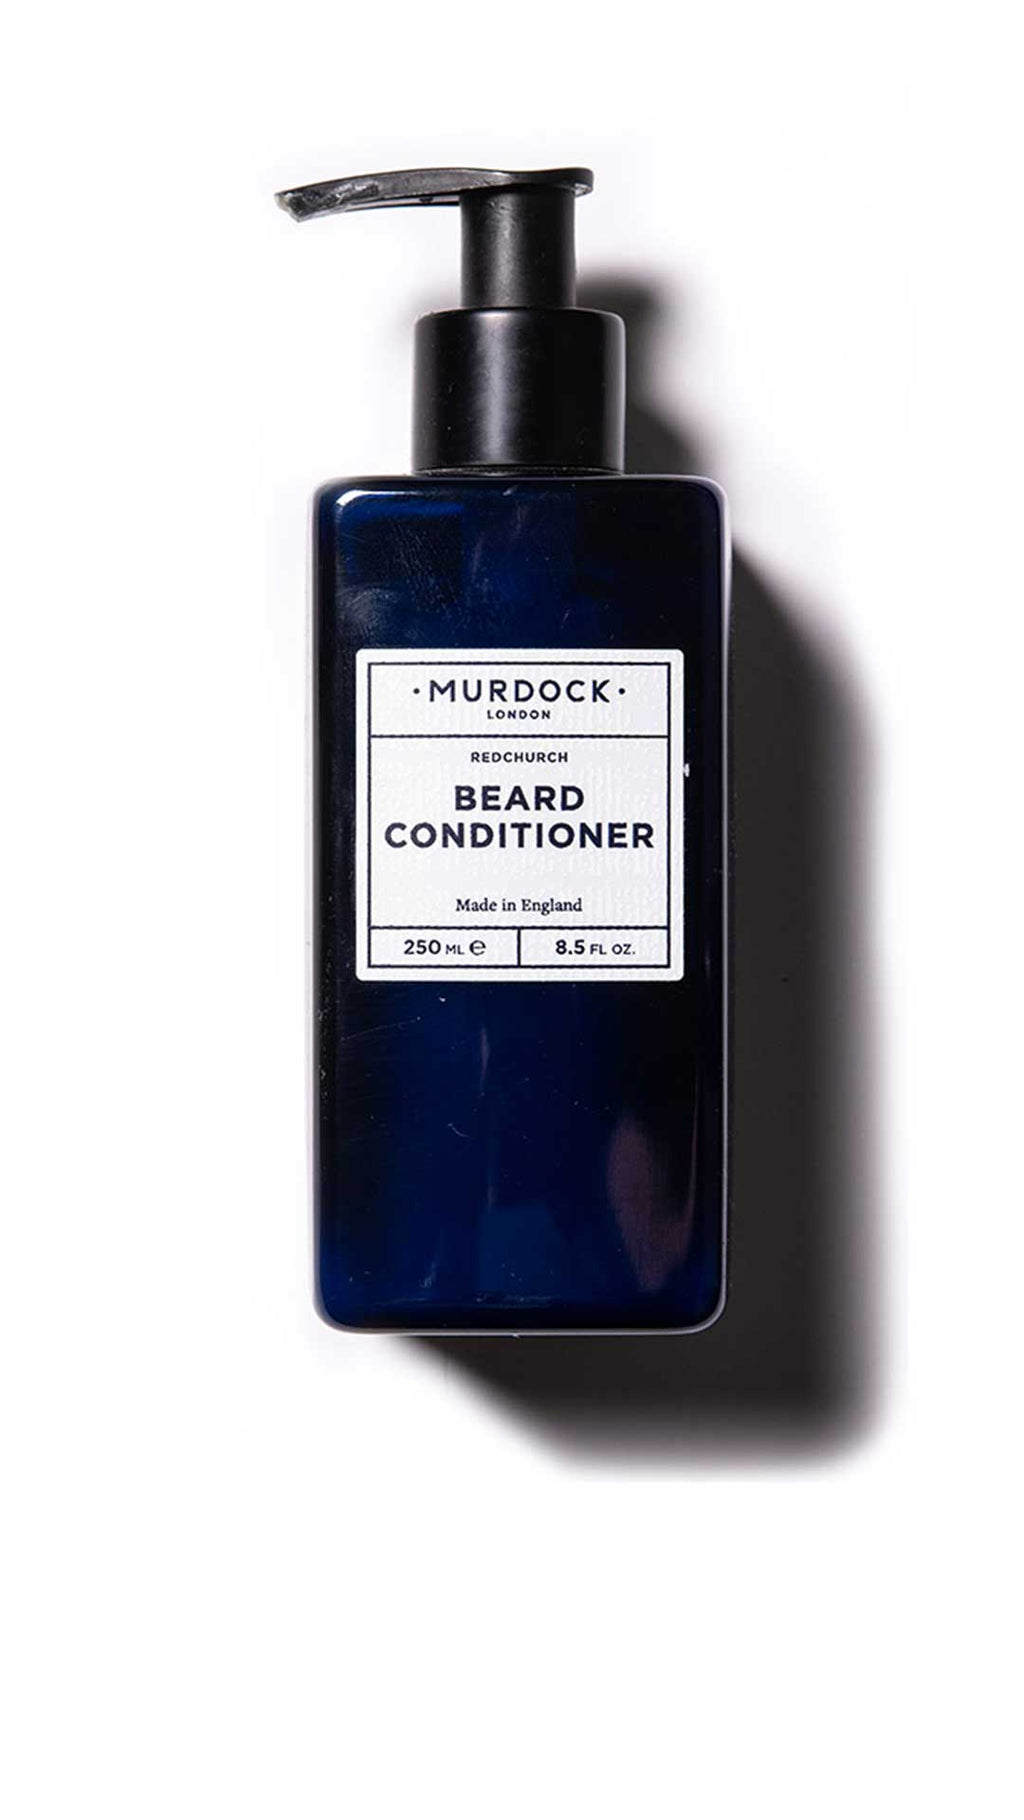 BEARD CONDITIONER  - MURDOCK OF LONDON